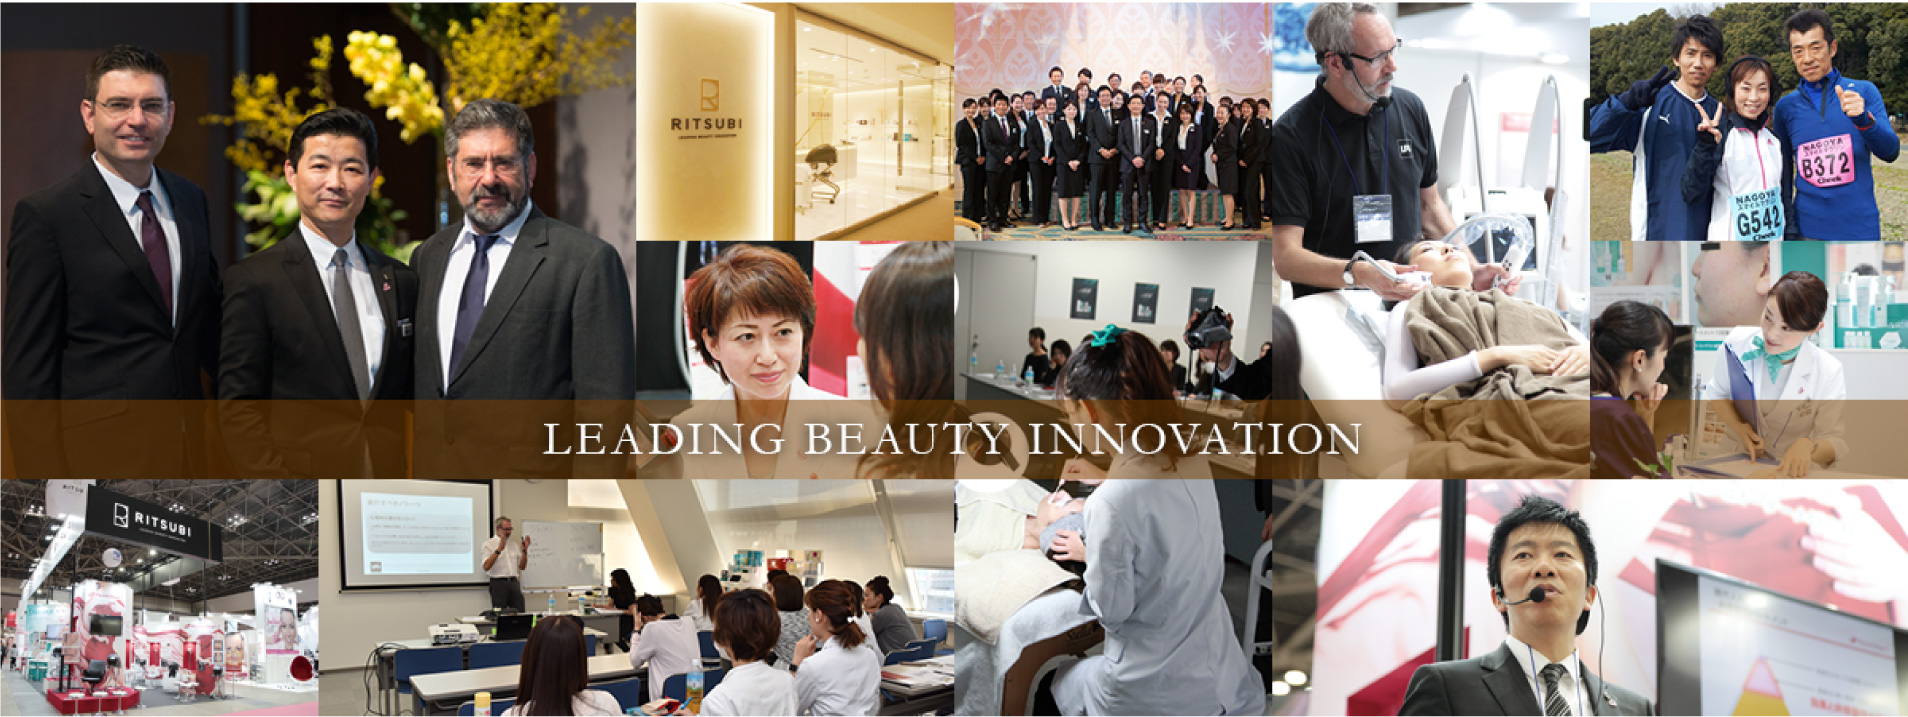 LEADING BEAUTY INOVATION